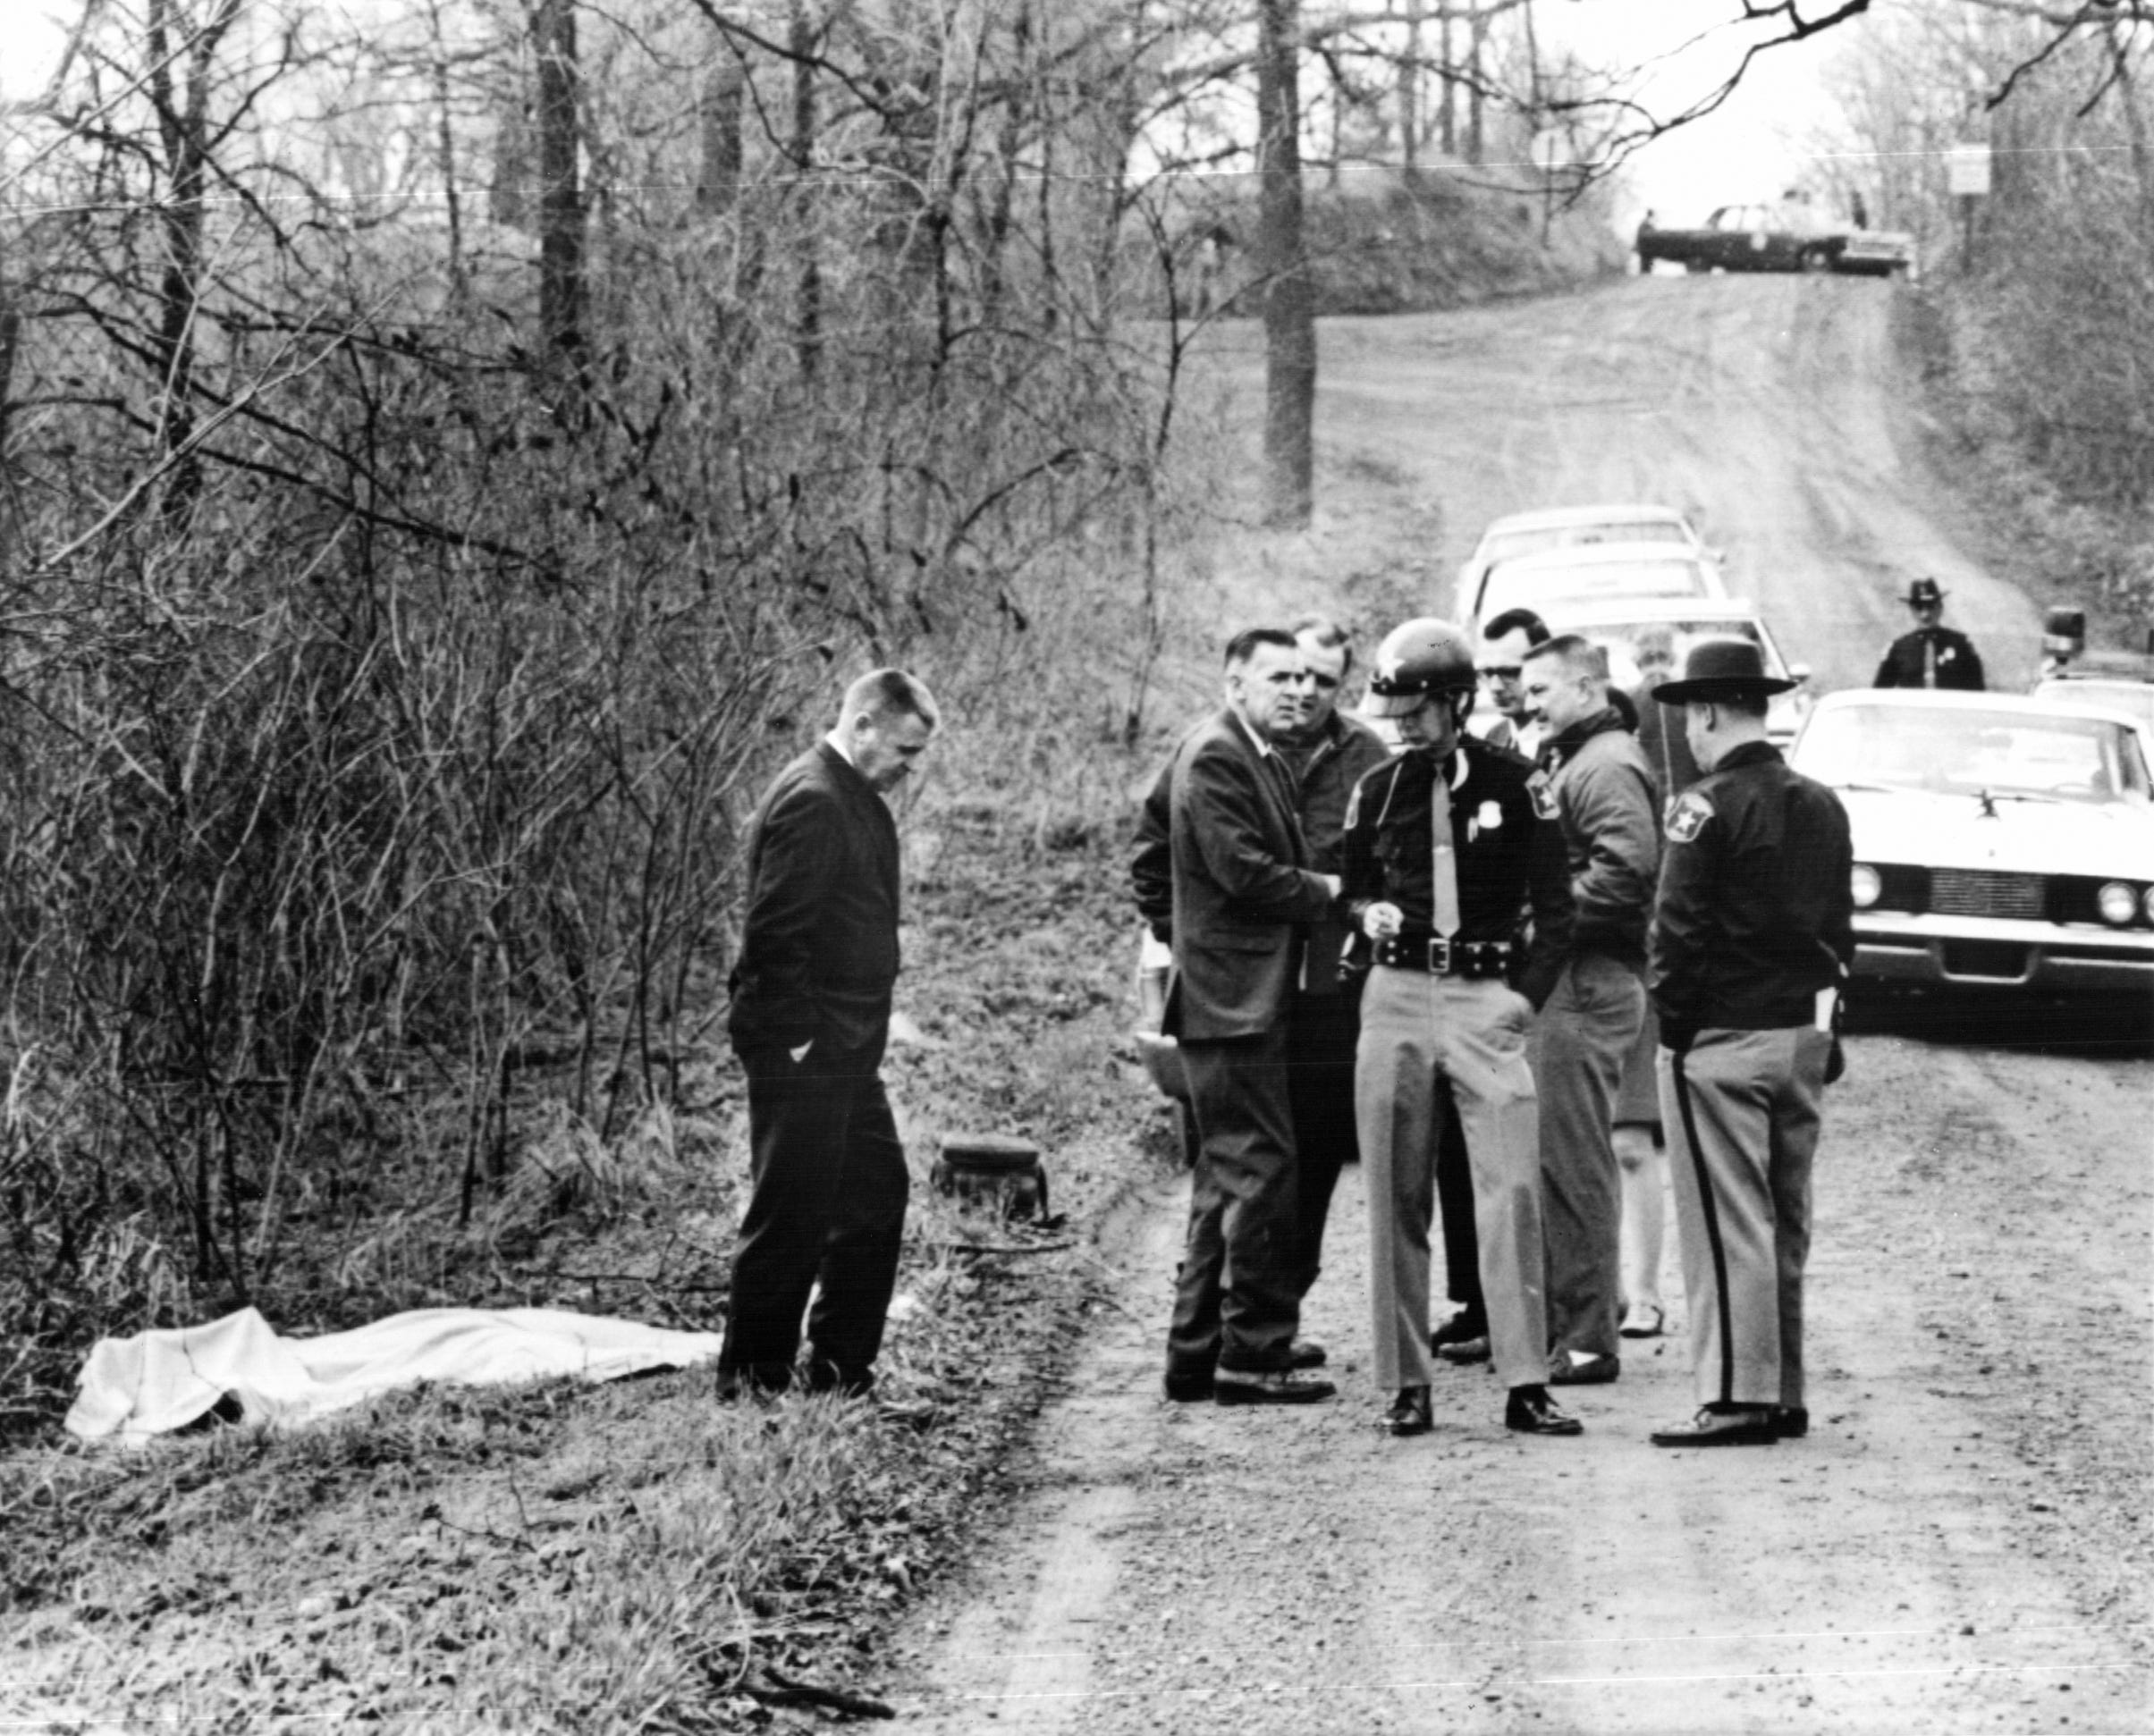 Washtenaw County Sheriff's onfer on a rural road north of Ypsilanti where the body of a 13-year old was found in April, 1969. Dawn Basom of Ypsilanti, whose nude body lies under the blanket at left, was the fifth young woman to be murdered in the Ann Arbor-Ypsilanti Area in the past 22 months. None of the murders have been solved.